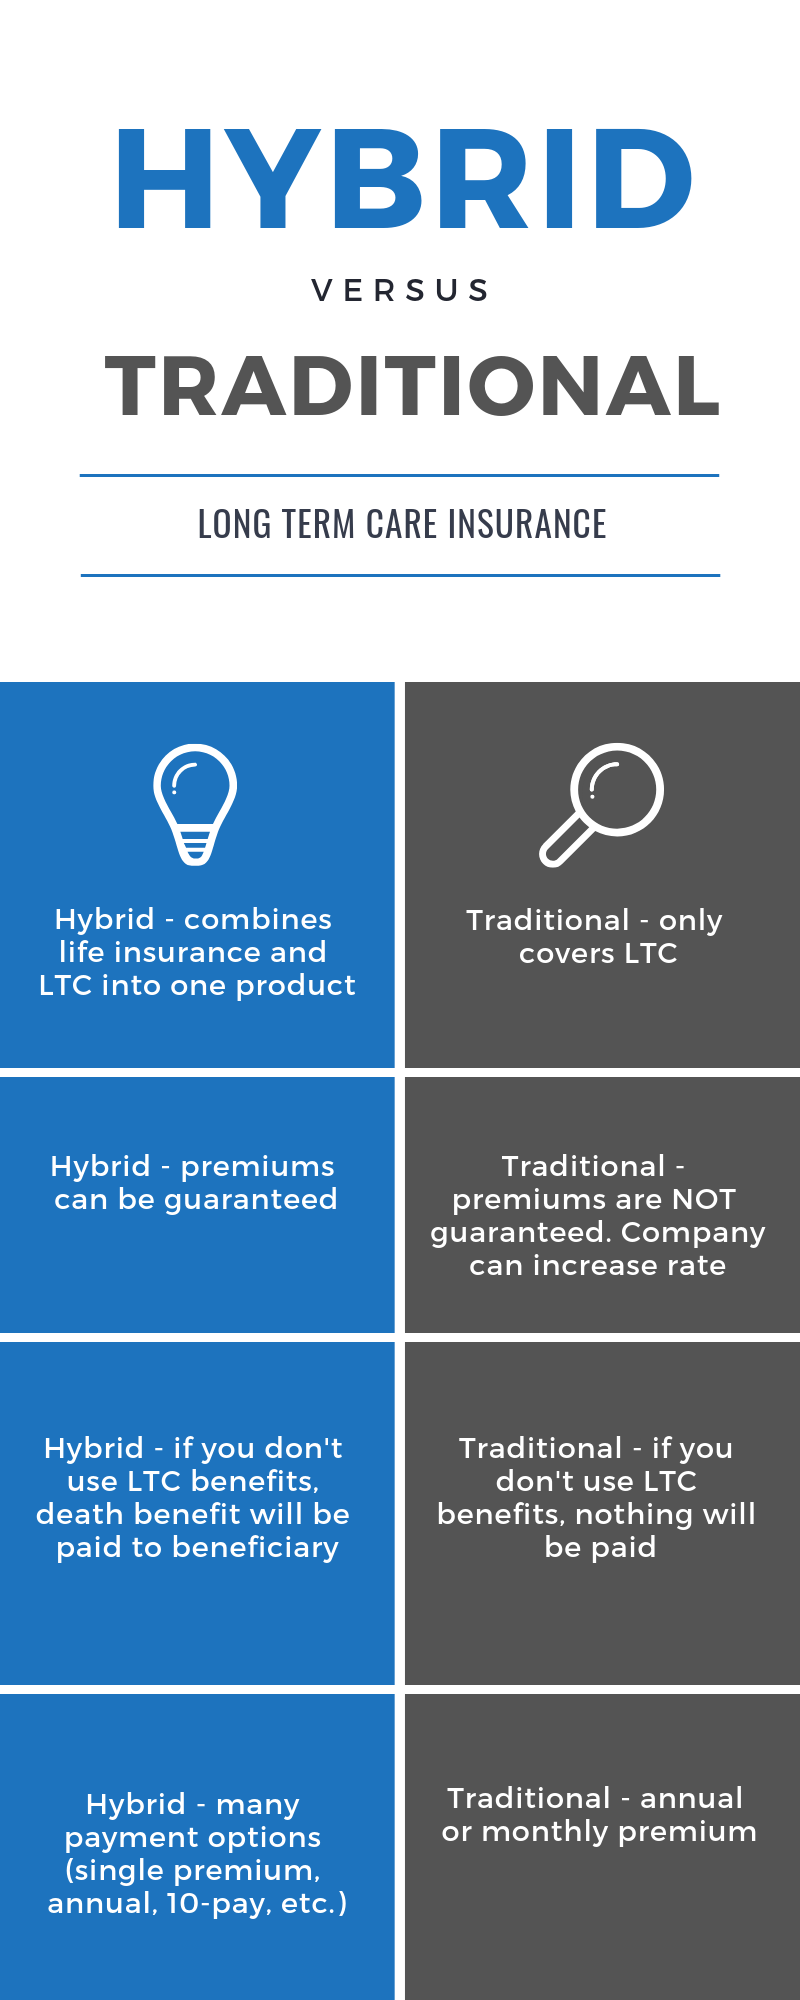 Hybrid vs Traditional Long Term Care Insurance Infographic